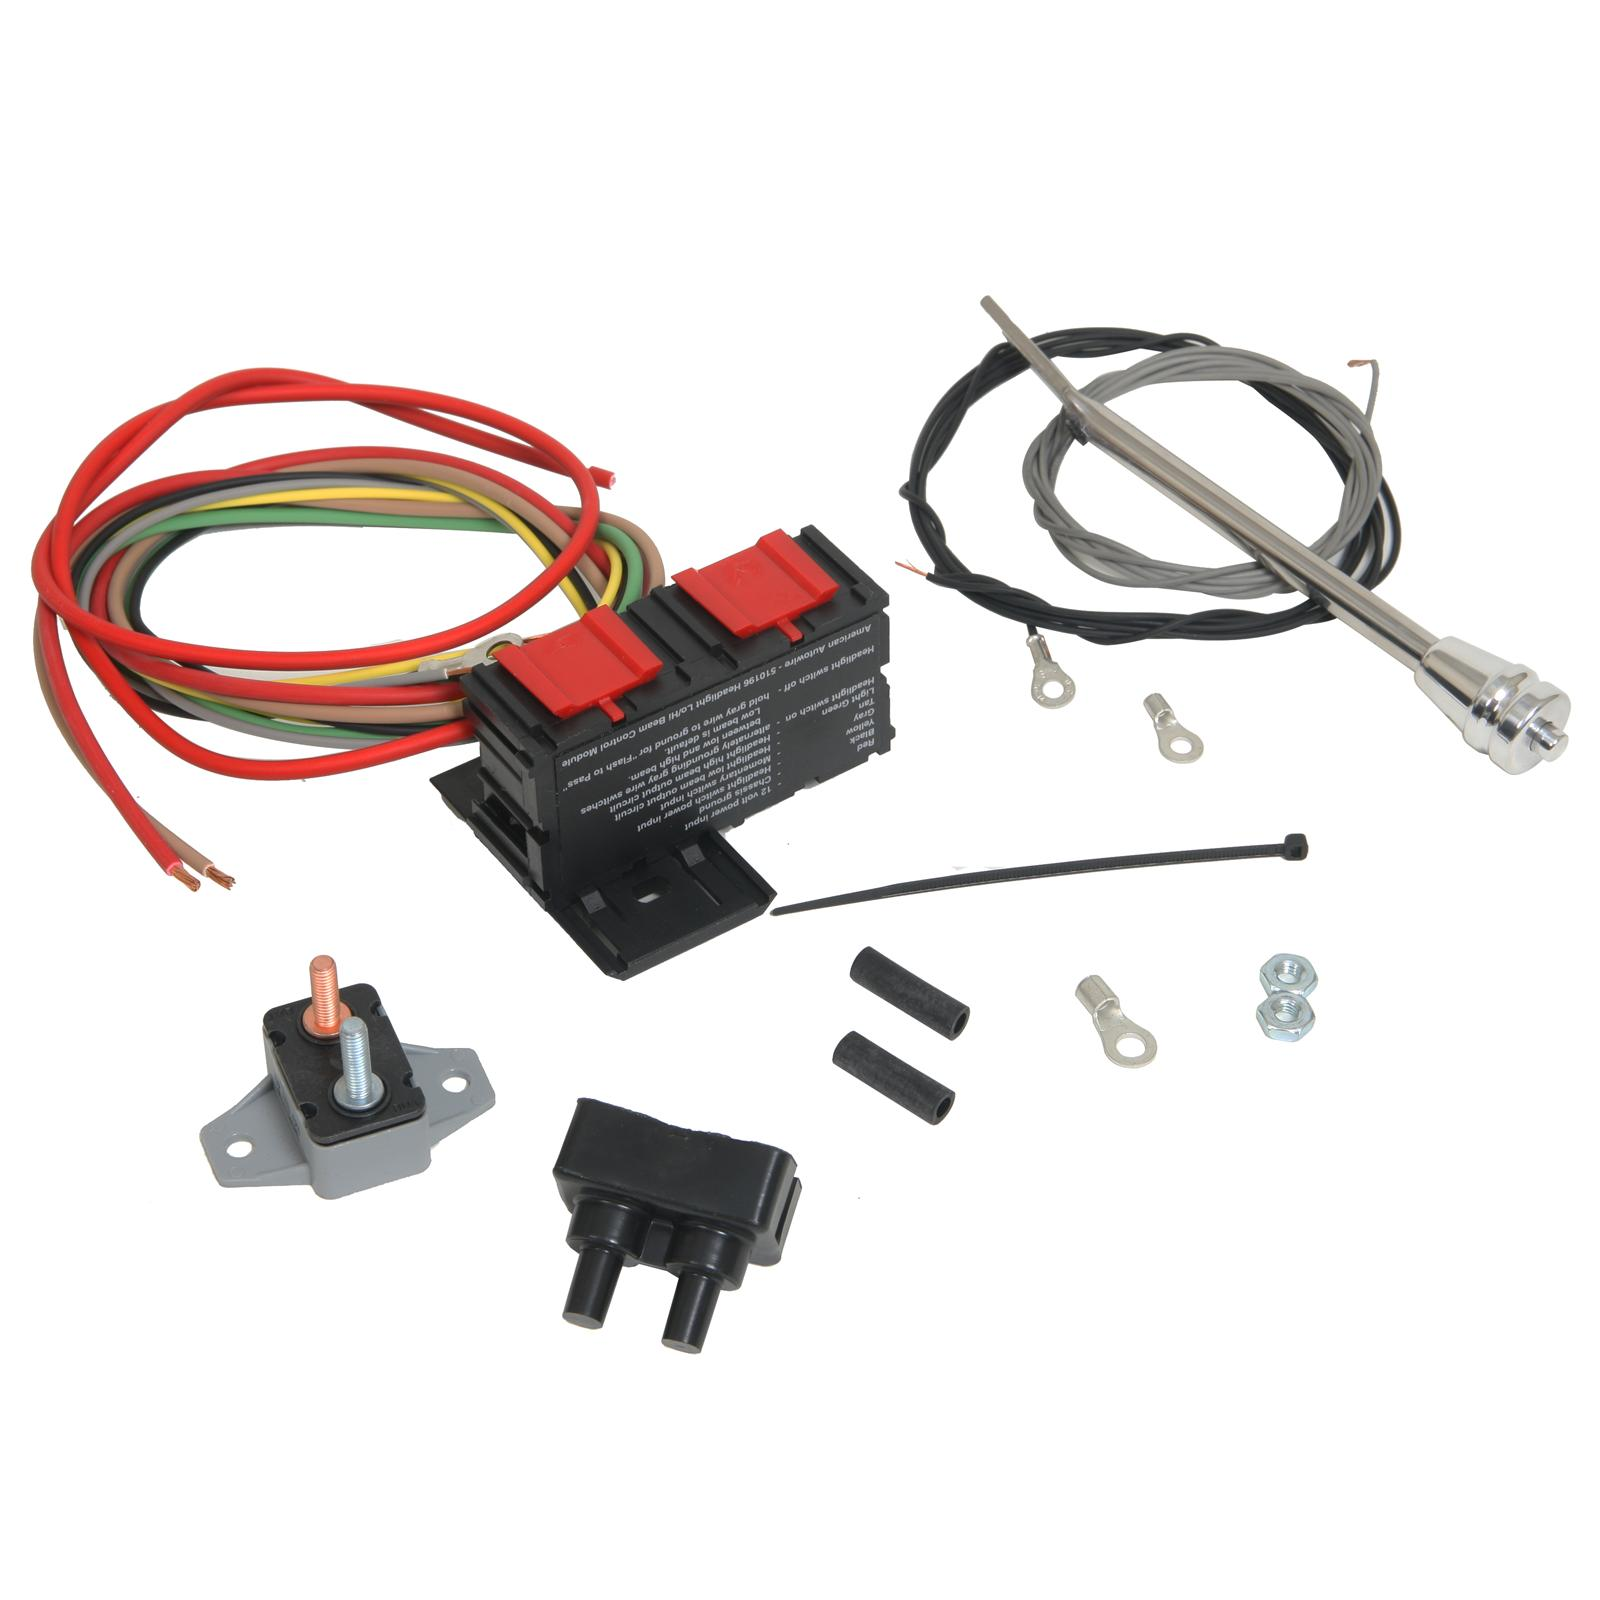 hight resolution of ididit headlight dimmer switch kits 3100030040 free shipping on orders over 99 at summit racing